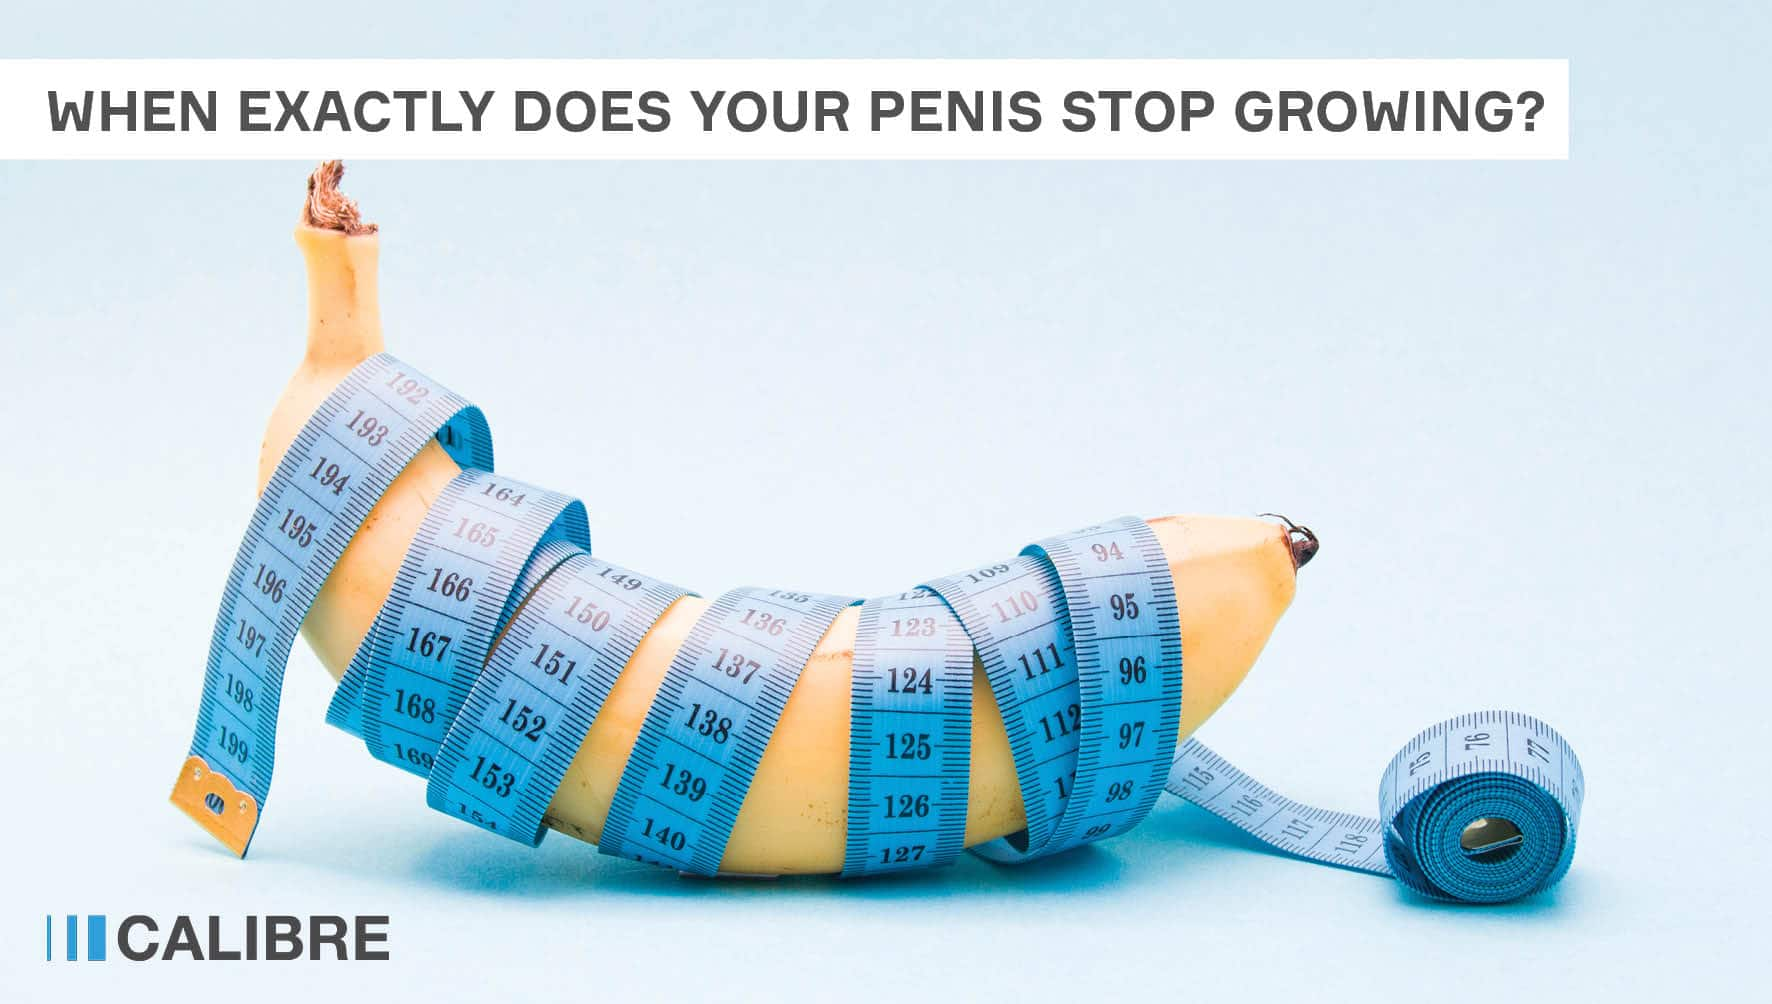 When exactly does your penis stop growing